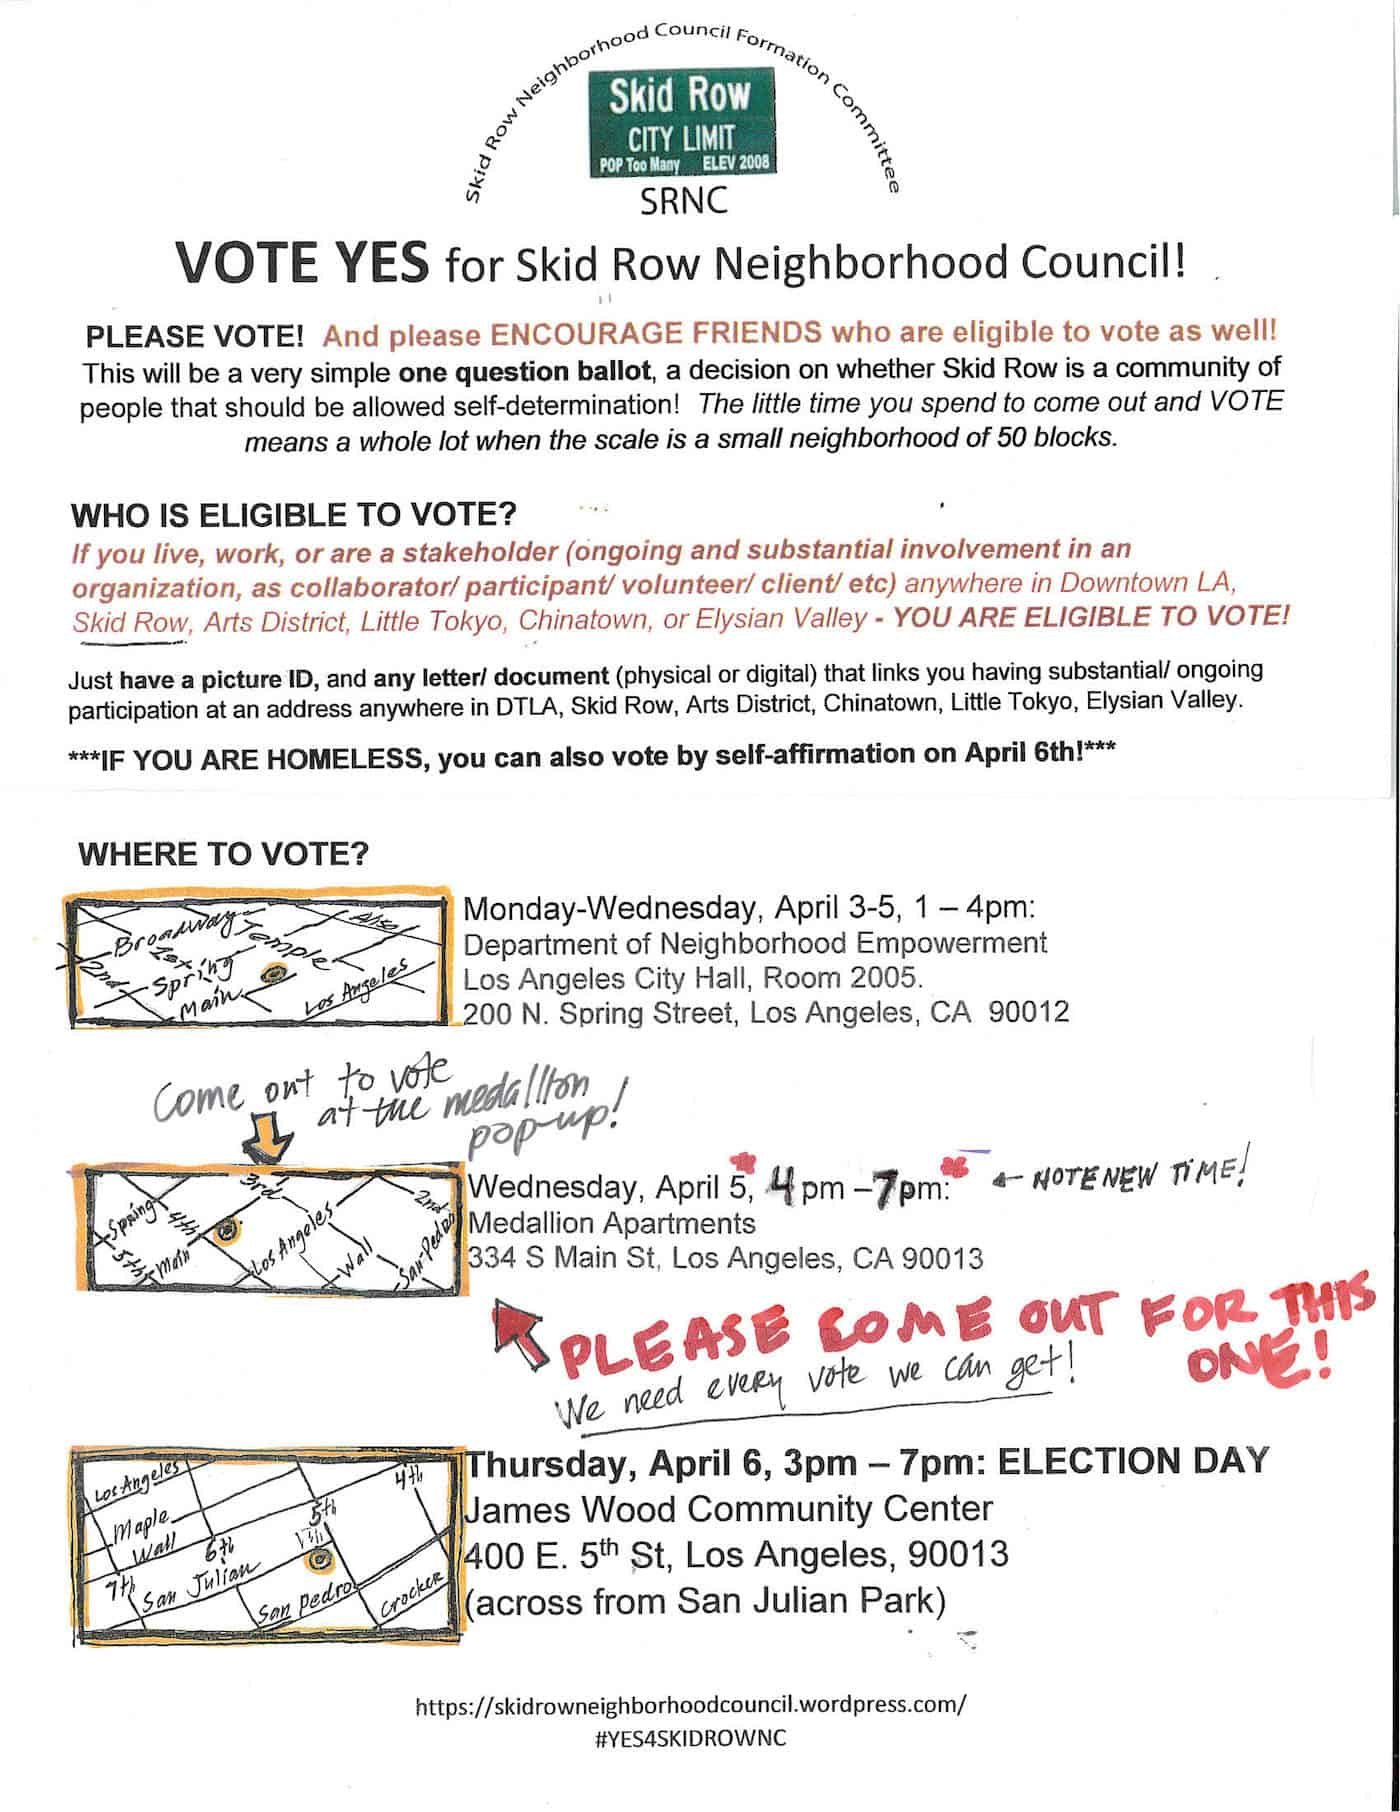 Vote YES for our Skid Row Neighborhood Council